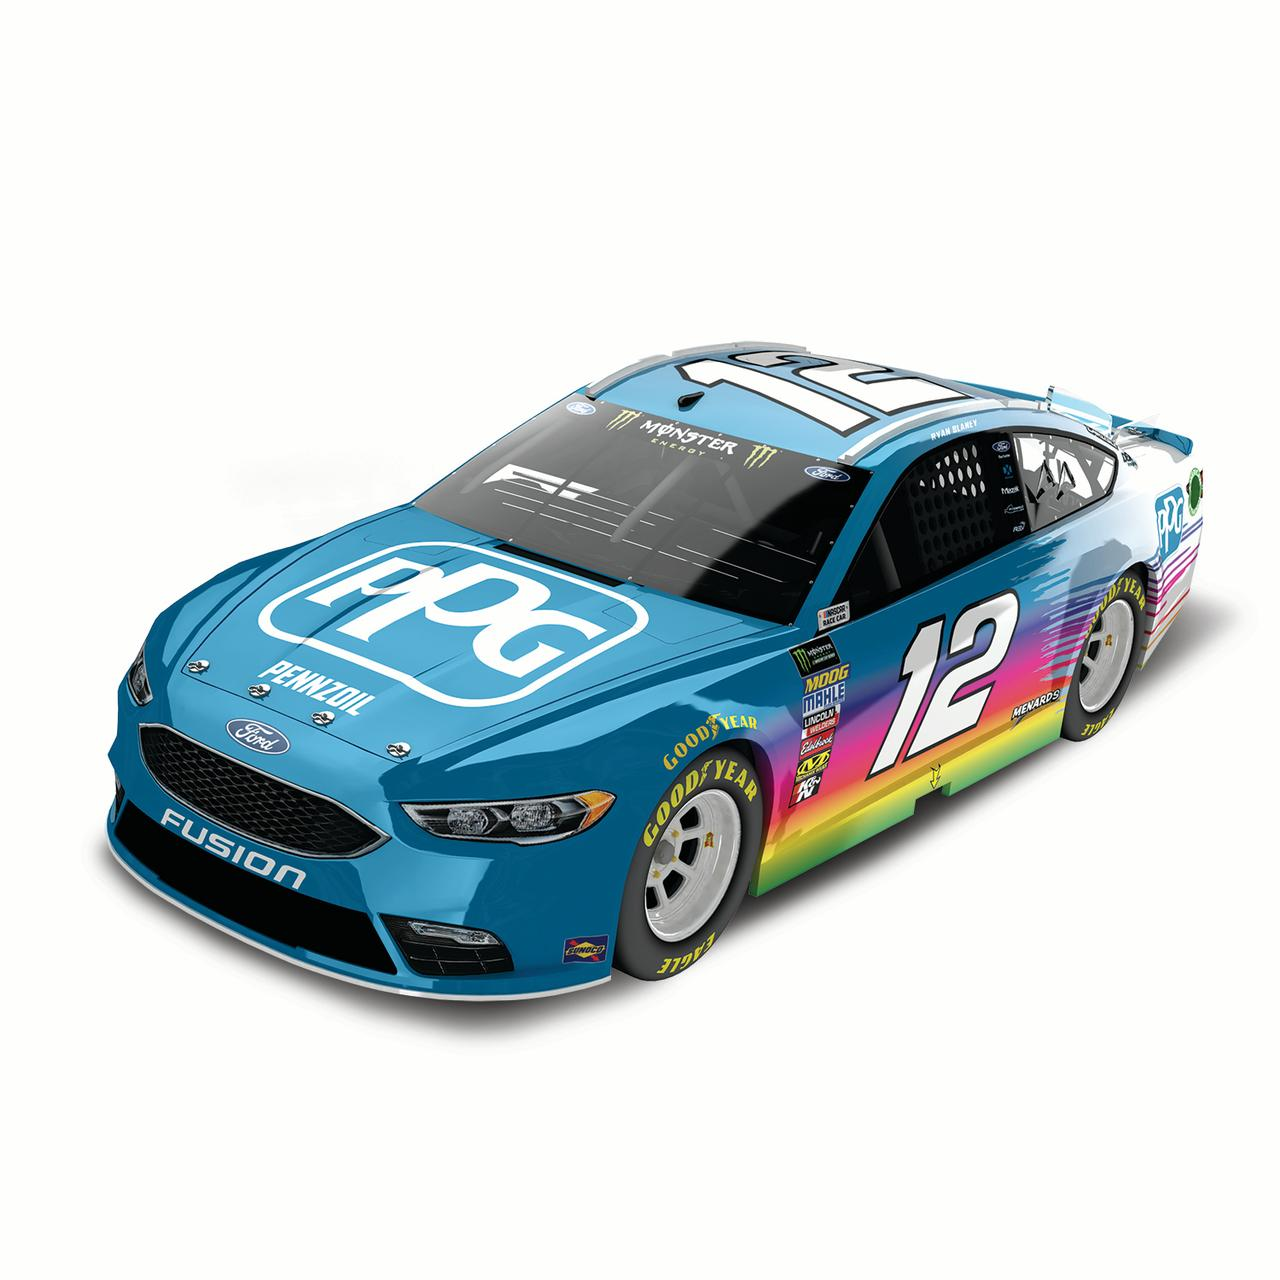 Lionel Racing Ryan Blaney #12 PPG Paints 2018 Ford Fusion 1:24 Scale HO Die-cast